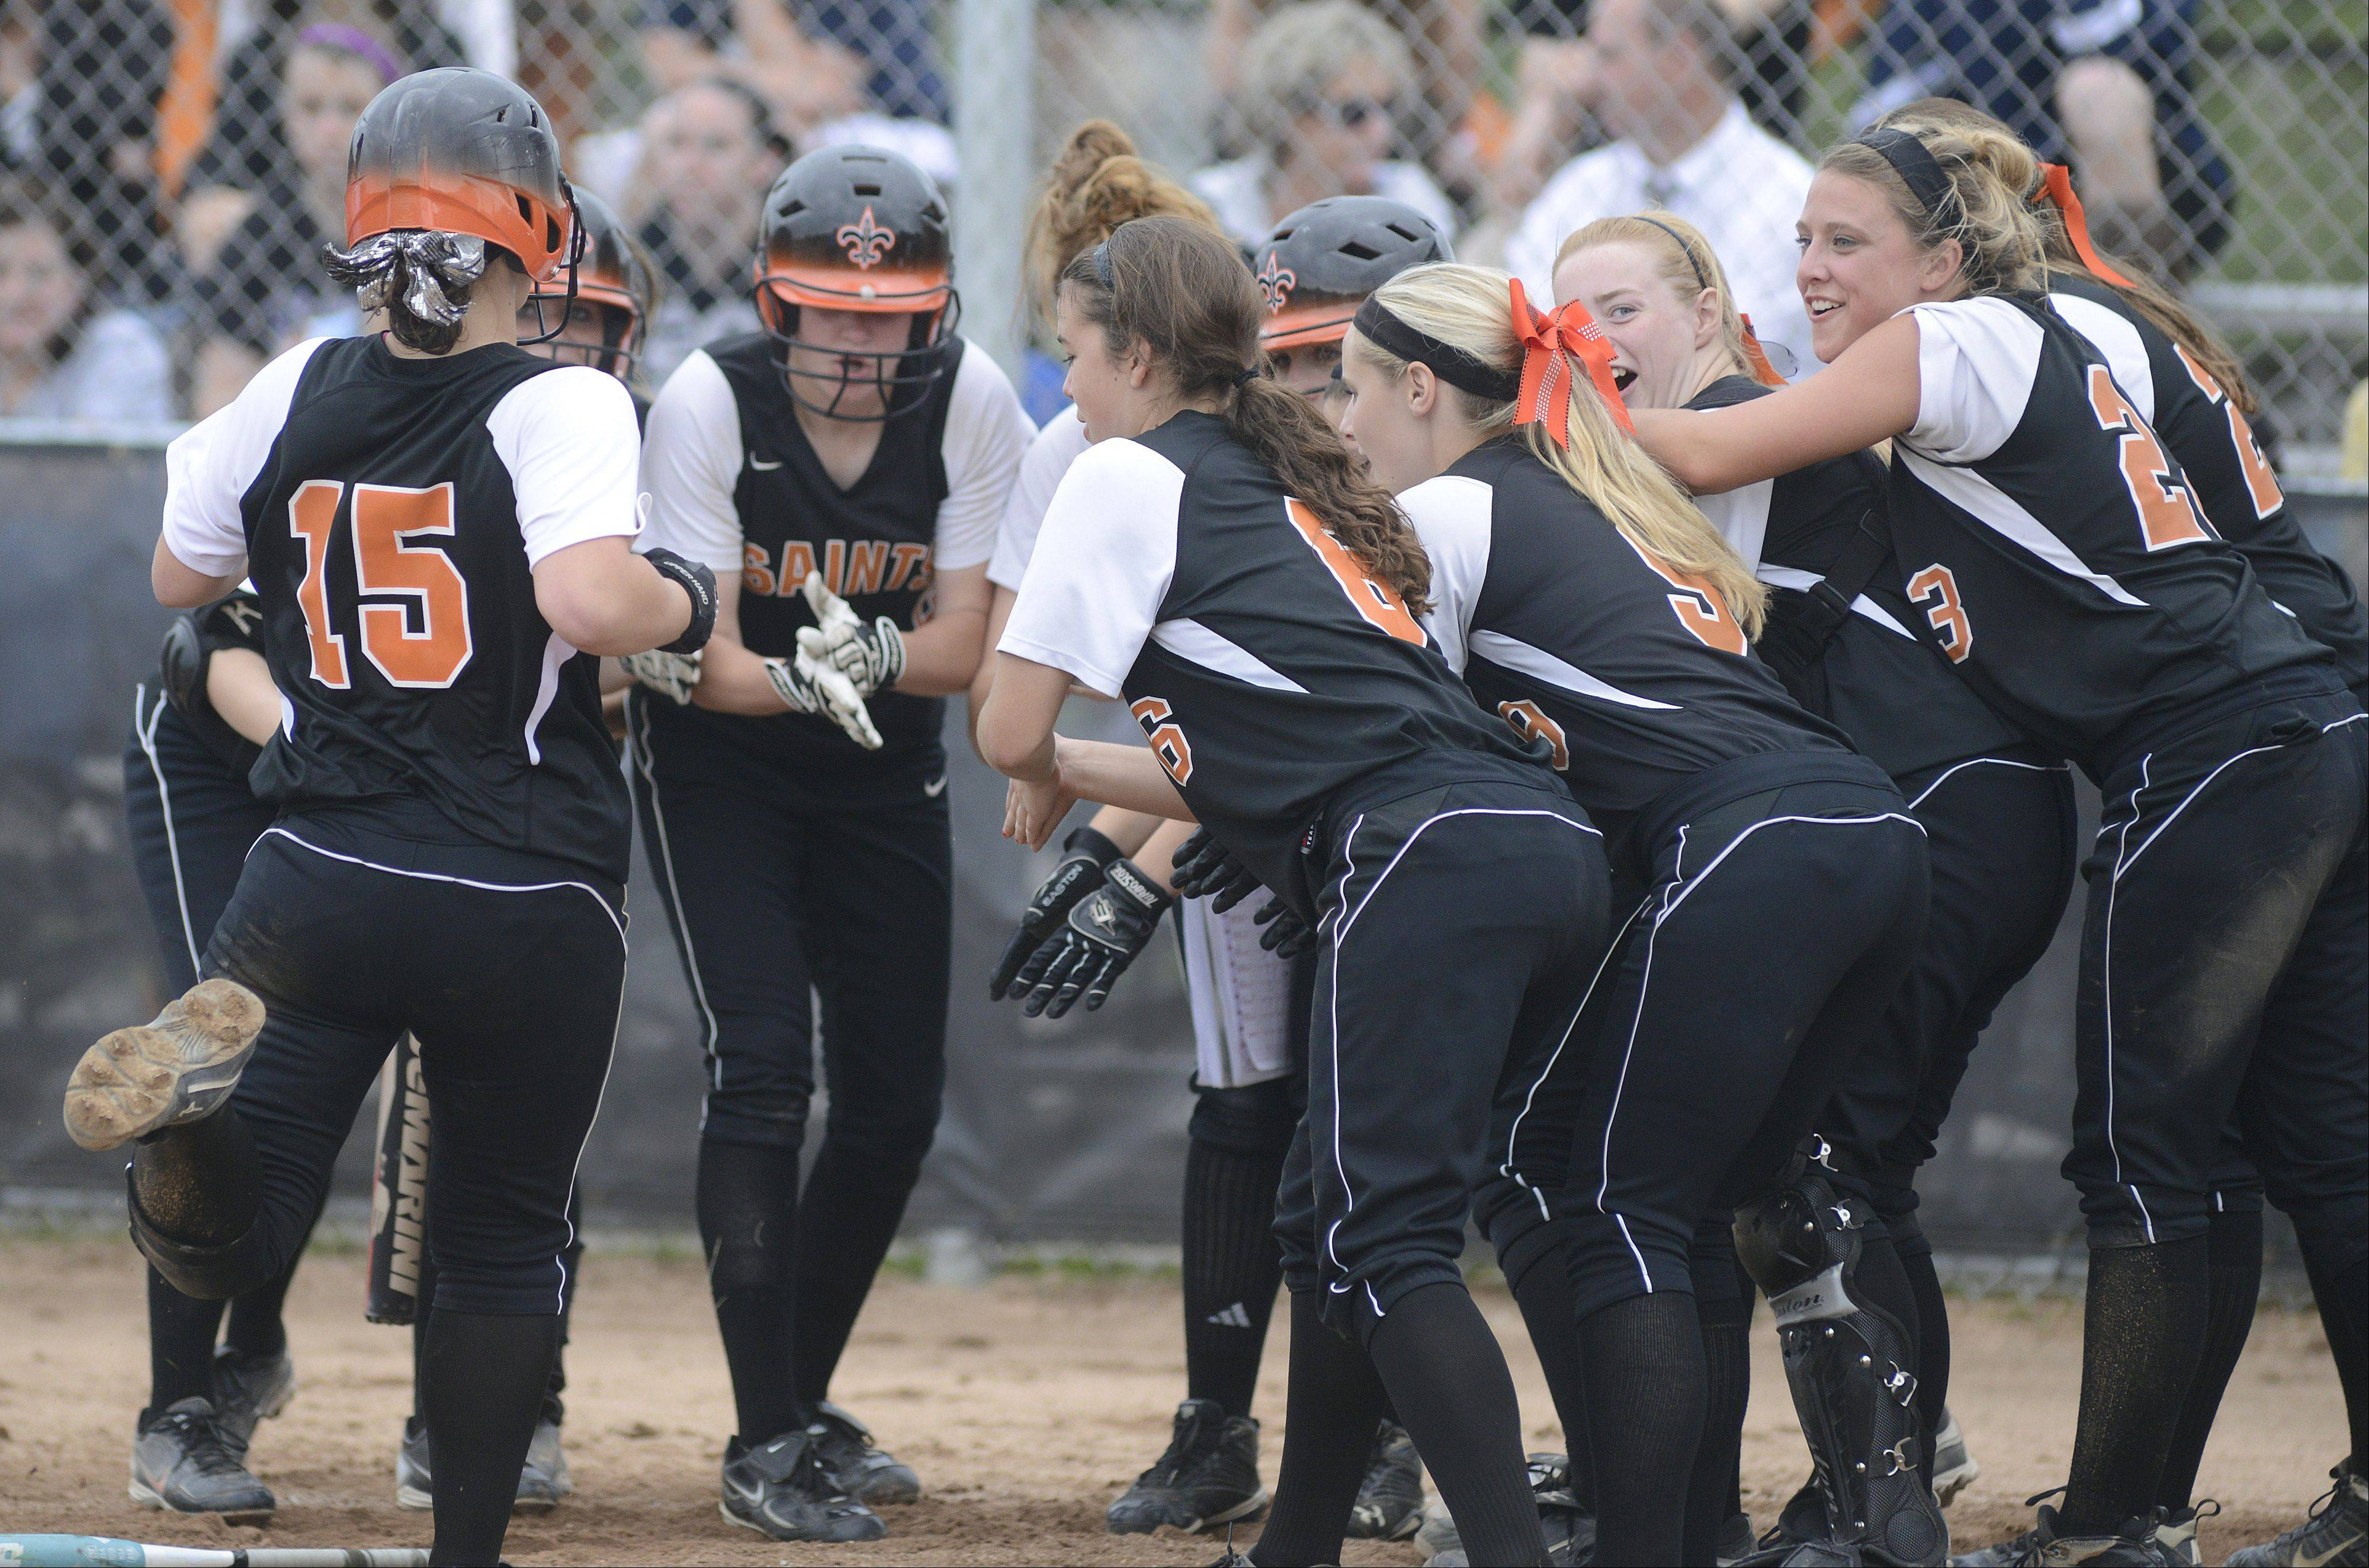 St. Charles East�s Alex Latoria is welcomed at home plate after hitting a home run in the sixth inning of the Saints� Class 4A sectional semifinal win over Bartlett on Tuesday in St. Charles.